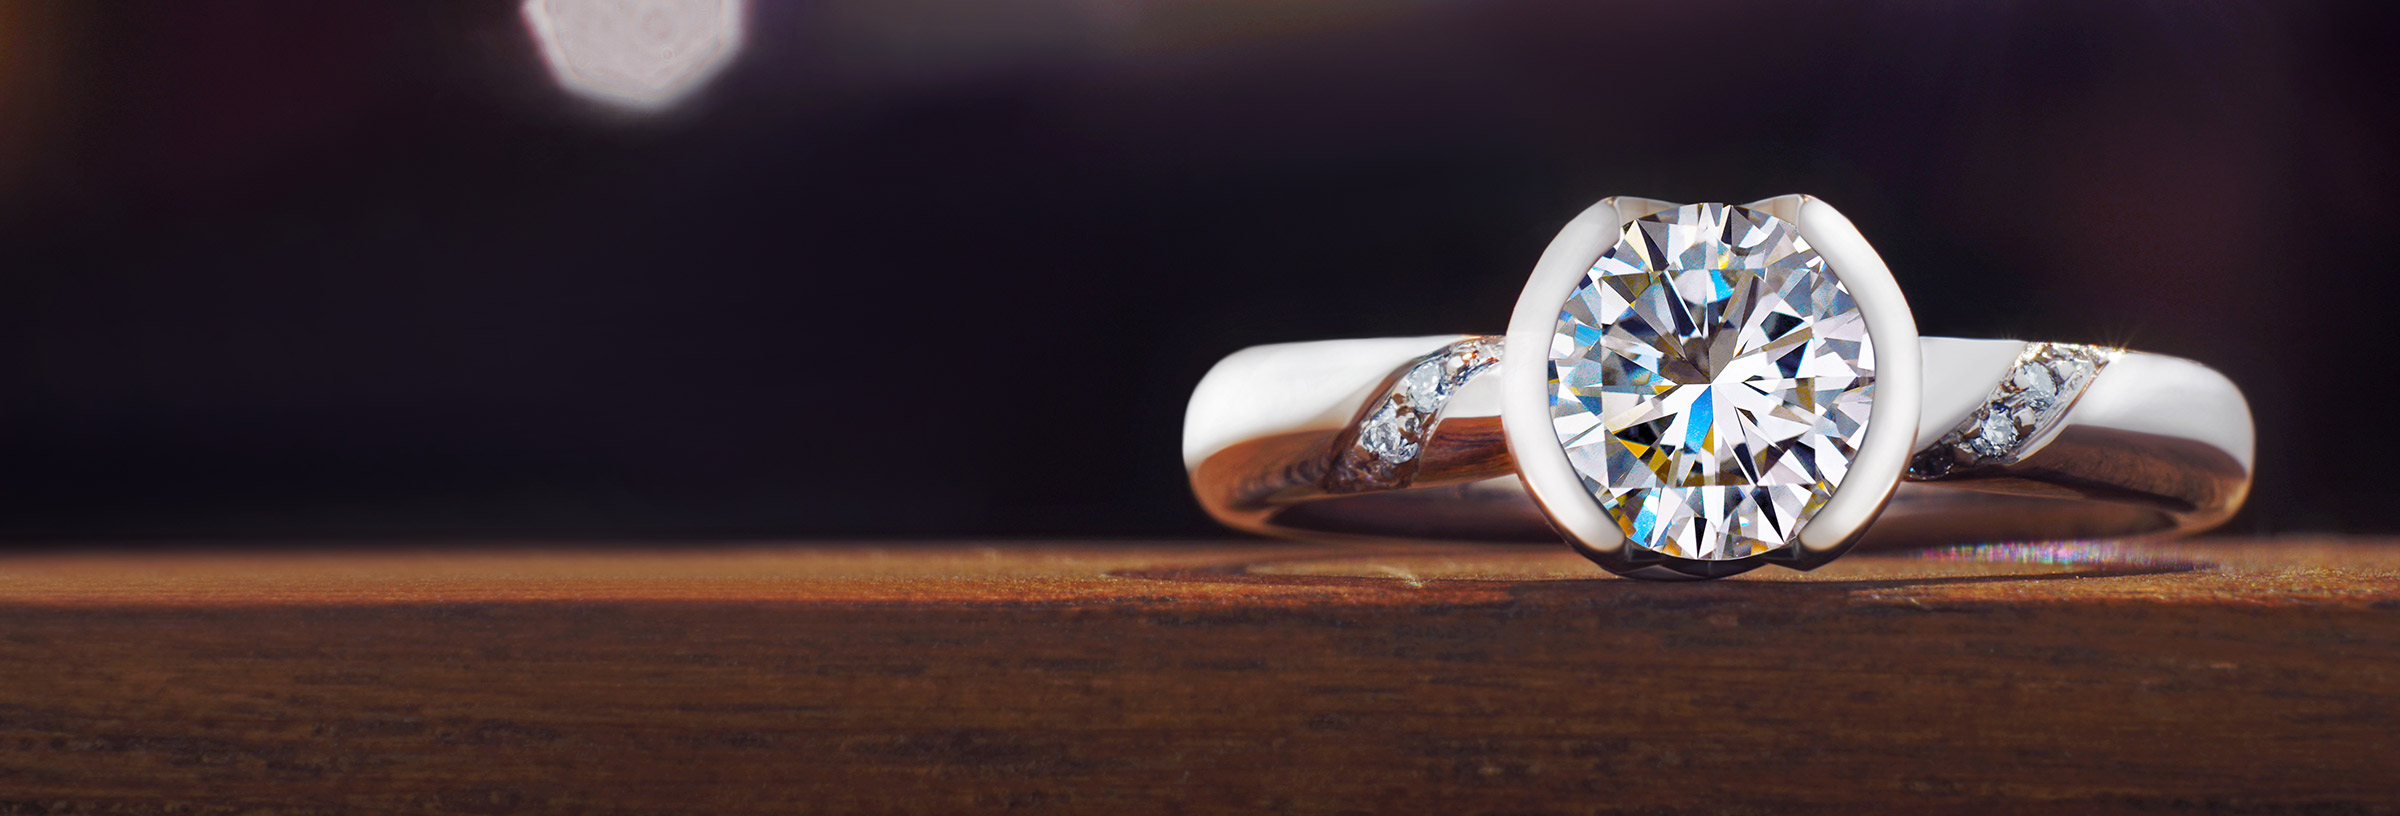 Fairtrade 18ct white gold and recycled diamond engagement ring